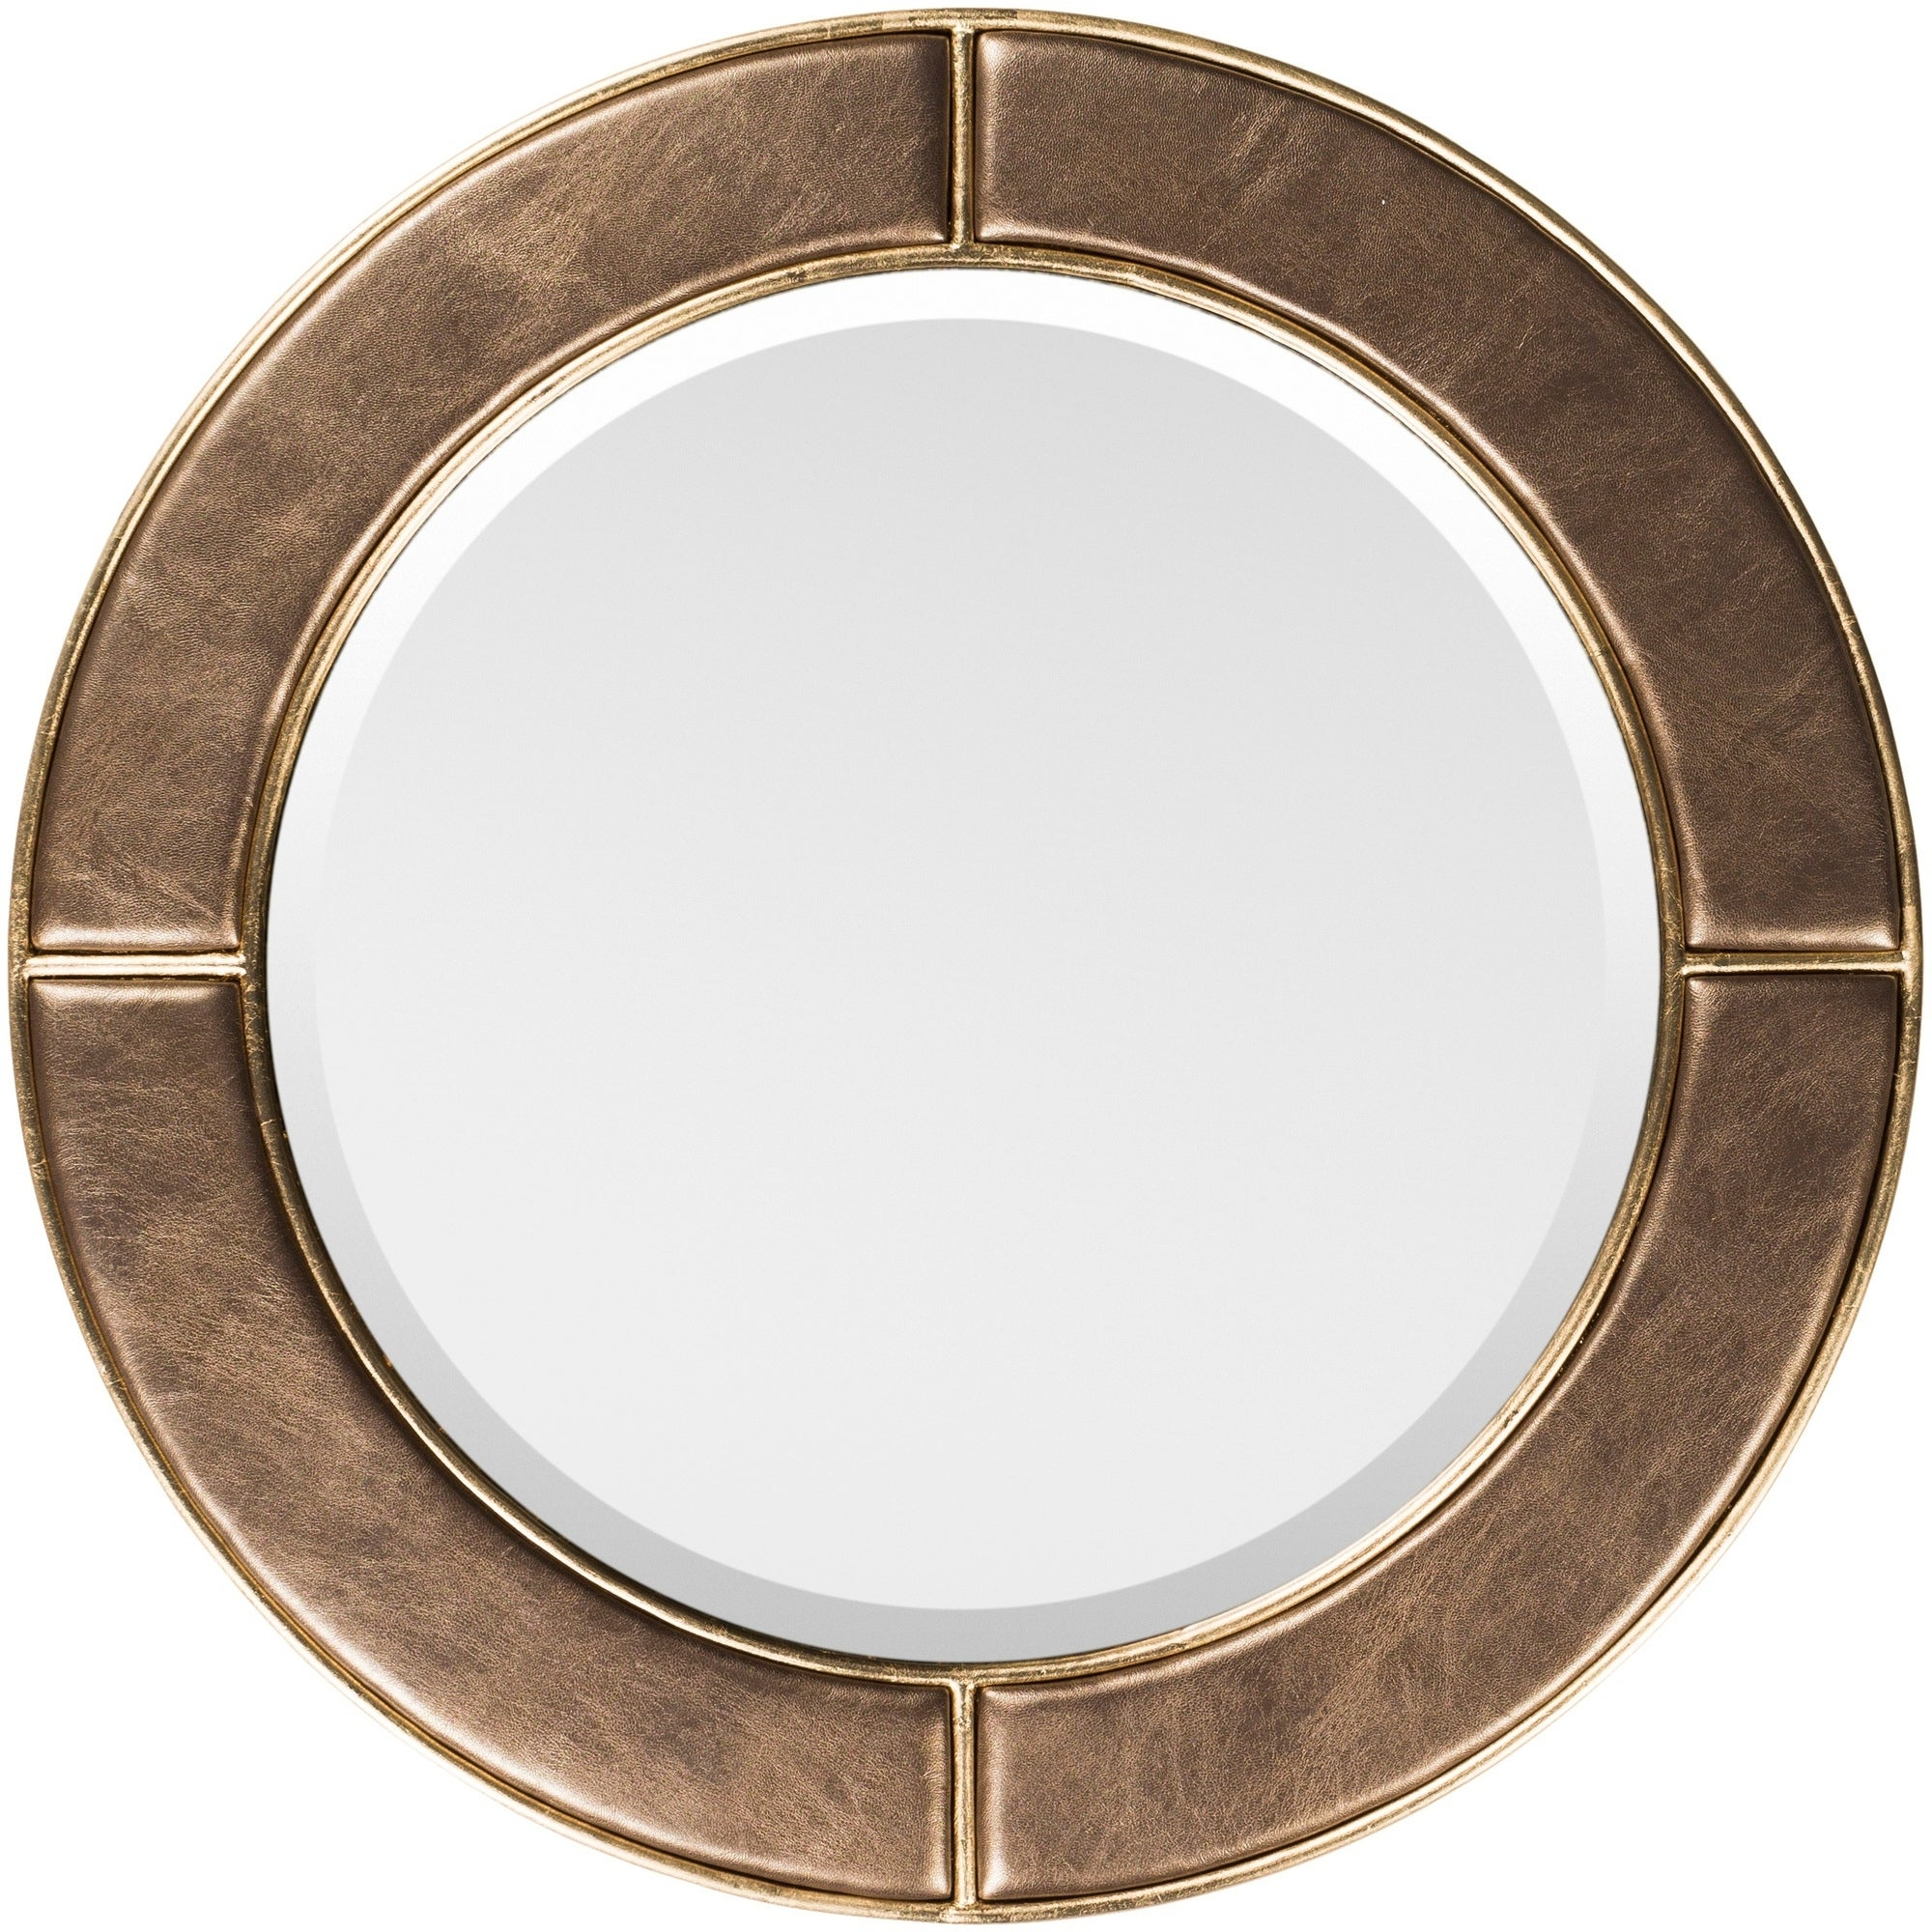 "Leather Framed Wall Mirrors For Best And Newest Lazaros Bronze Faux Leather Framed 32"" X 32"" Beveled Wall Mirror – 31.9"" X (View 20 of 20)"